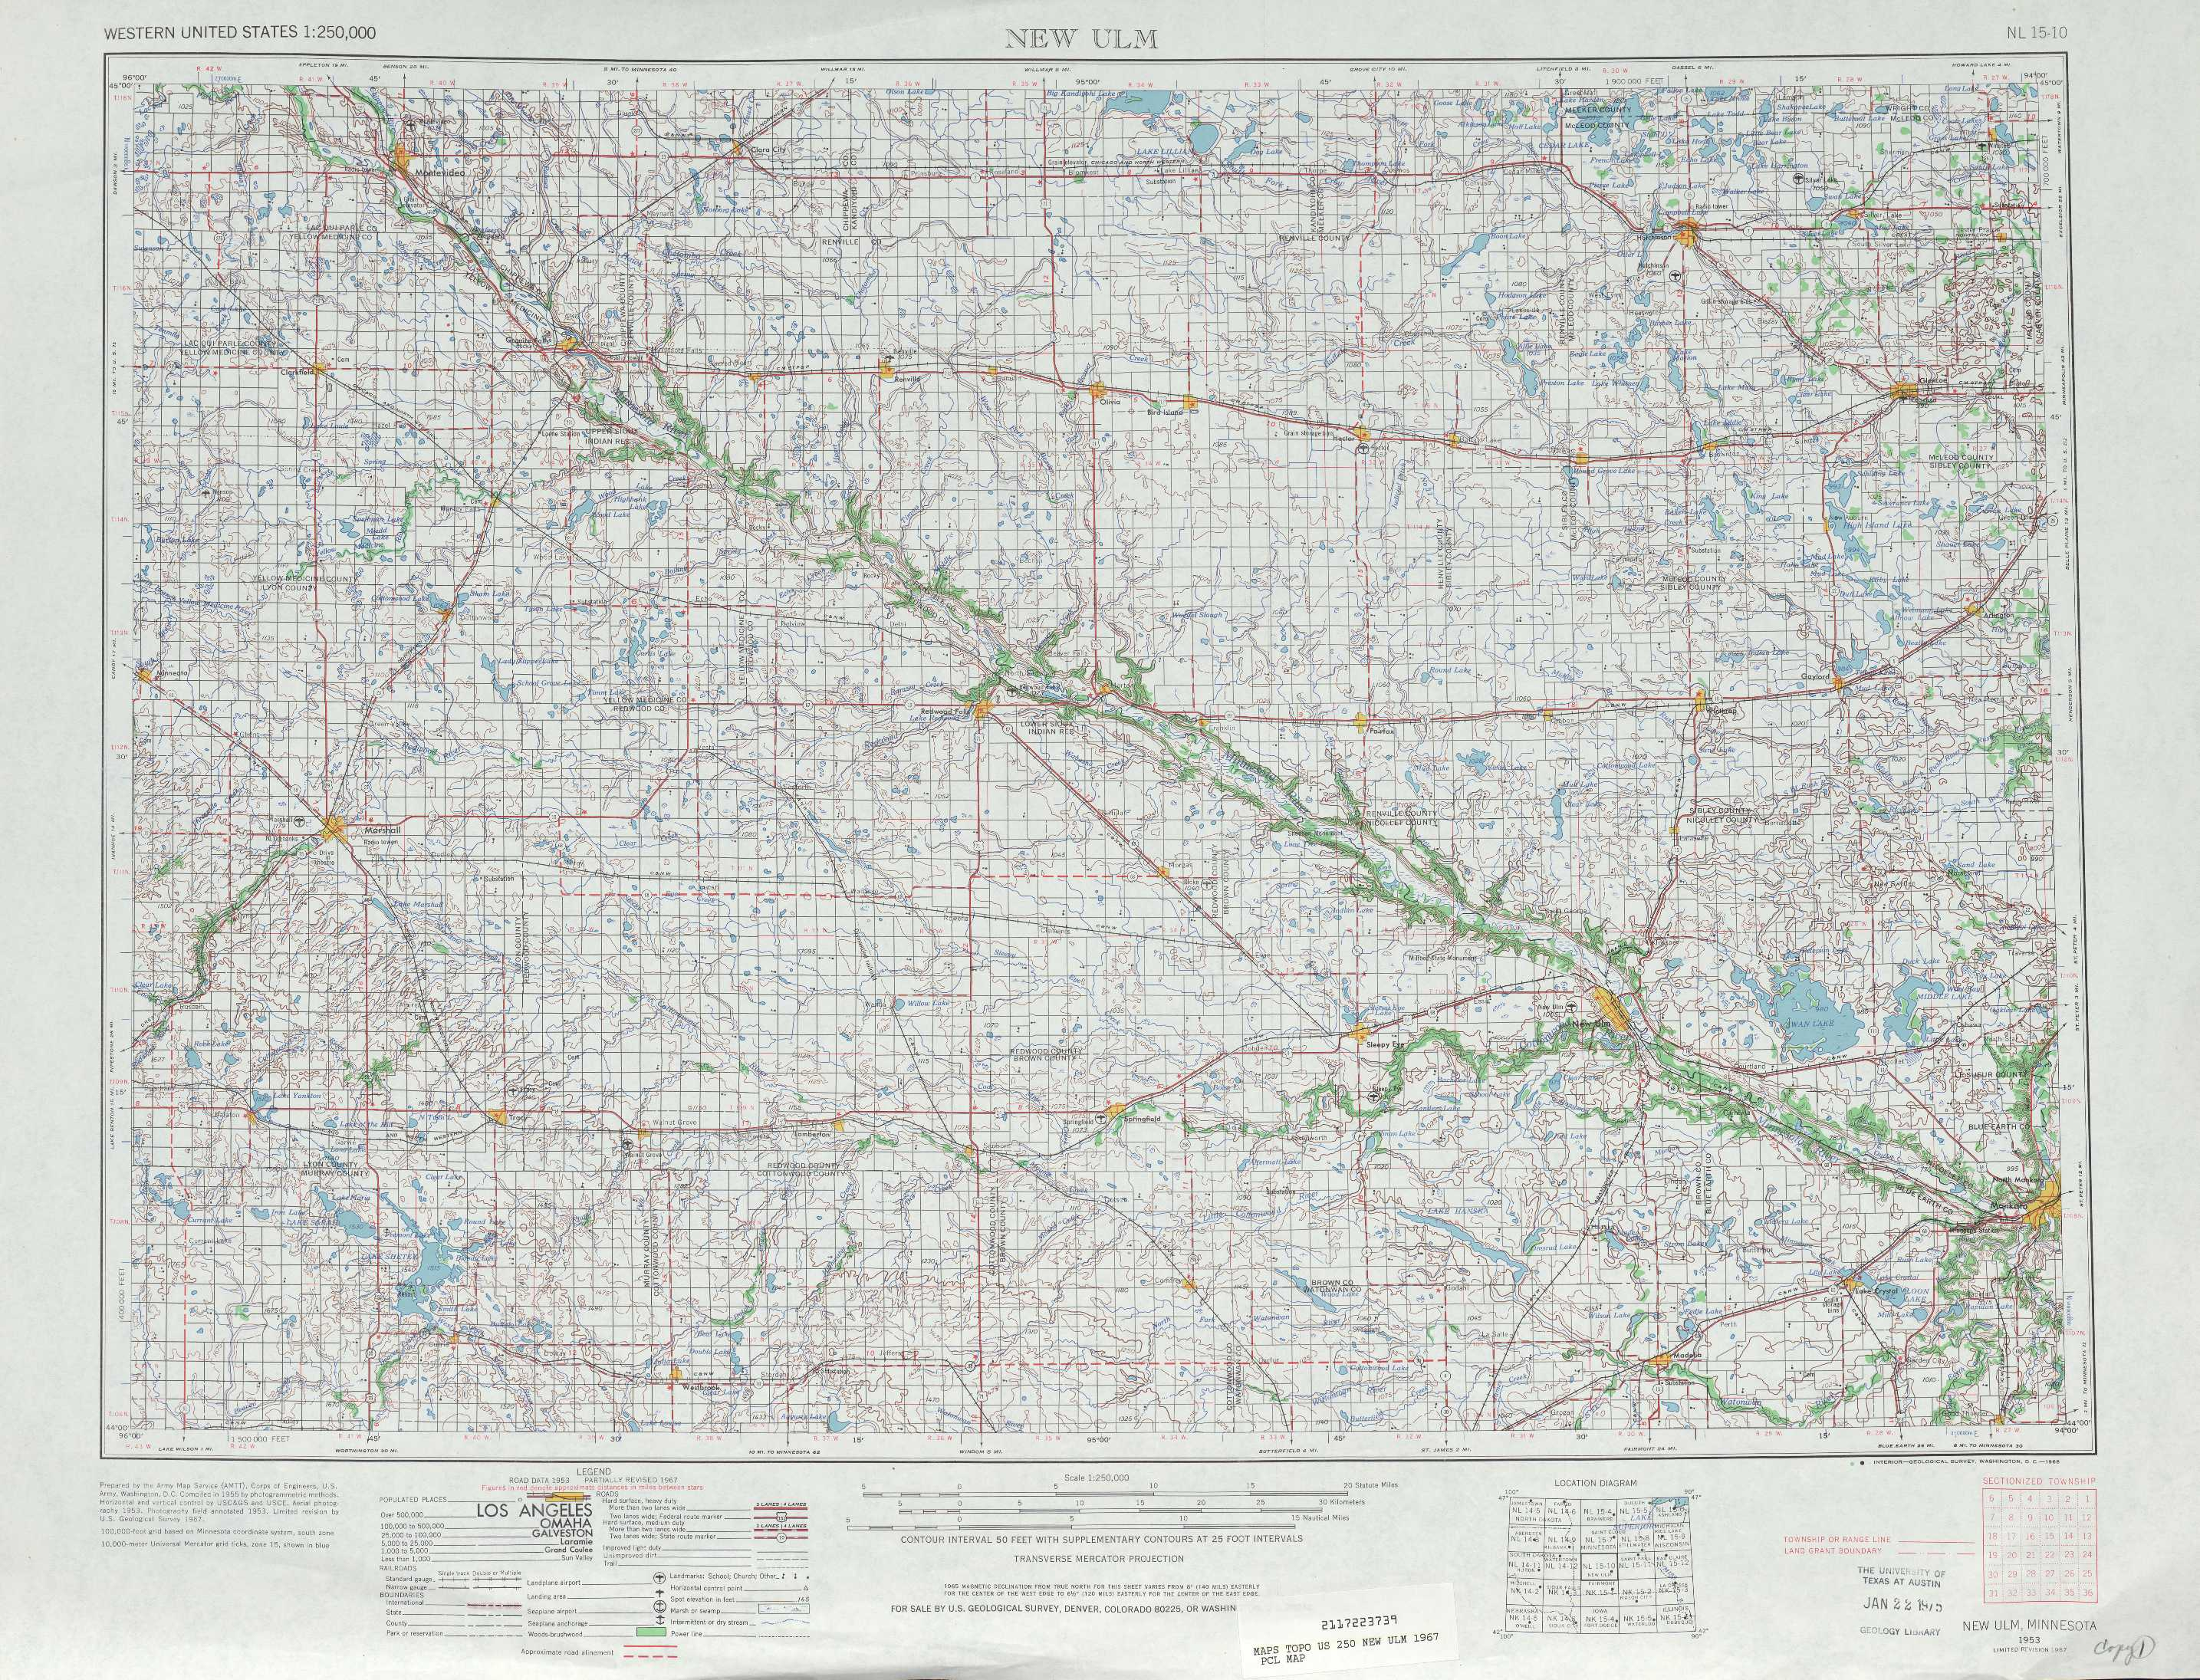 New Ulm topographic maps MN USGS Topo Quad 44094a1 at 1250000 scale